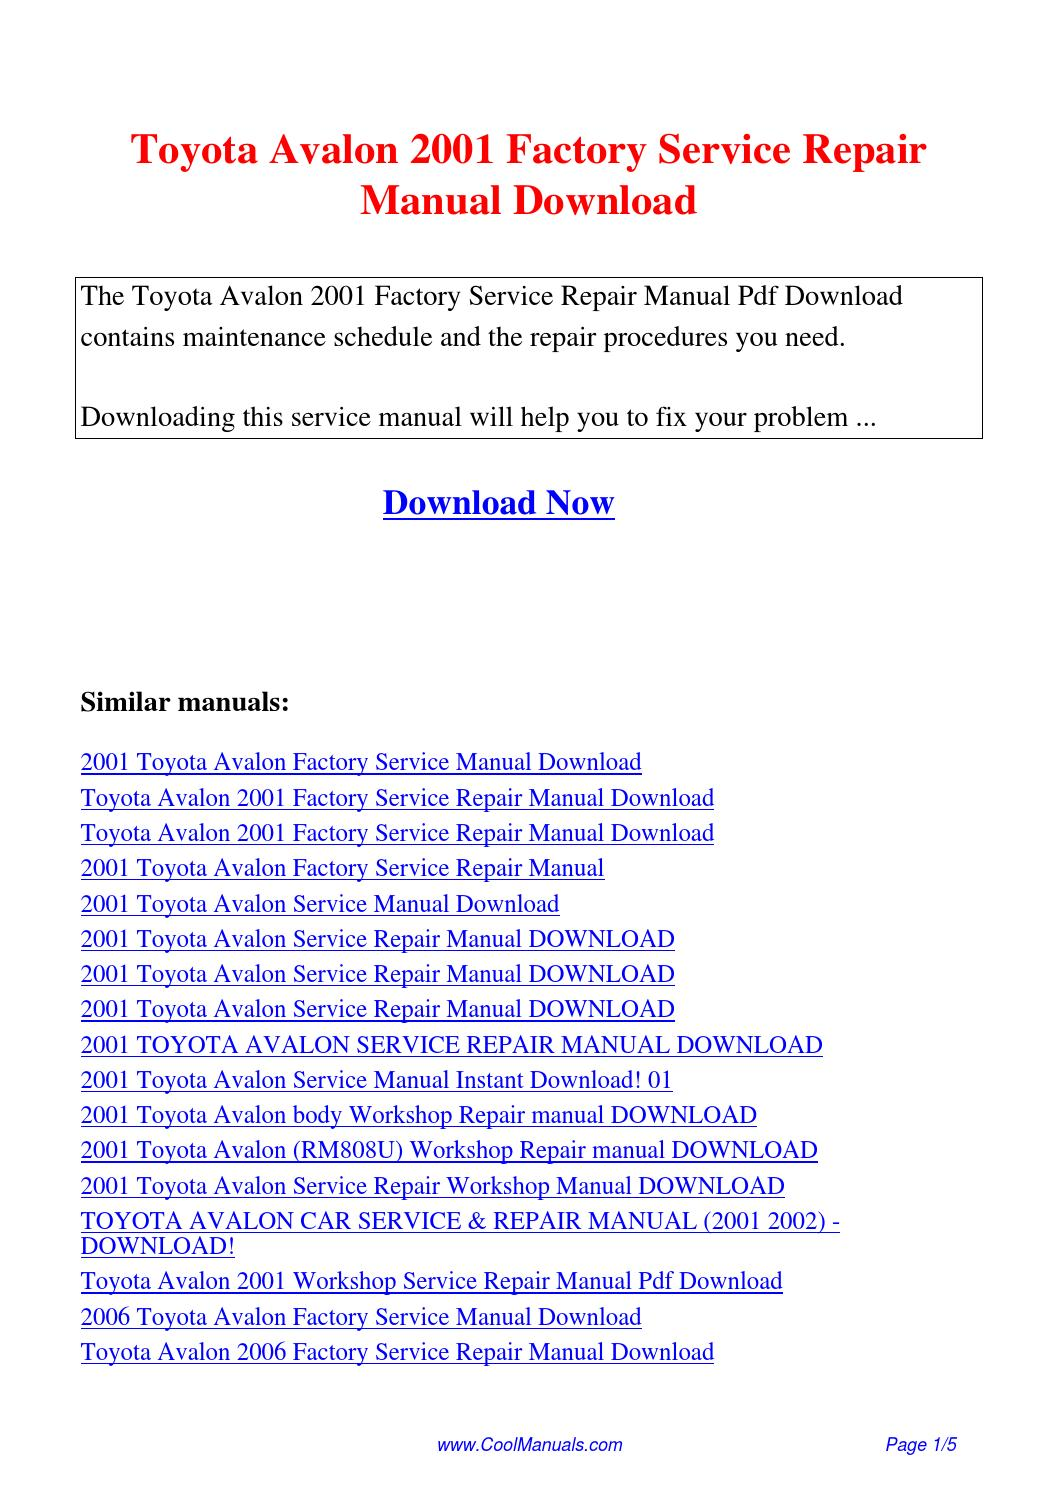 Toyota Avalon 2001 Factory Service Repair Manual.pdf by Linda Pong - issuu